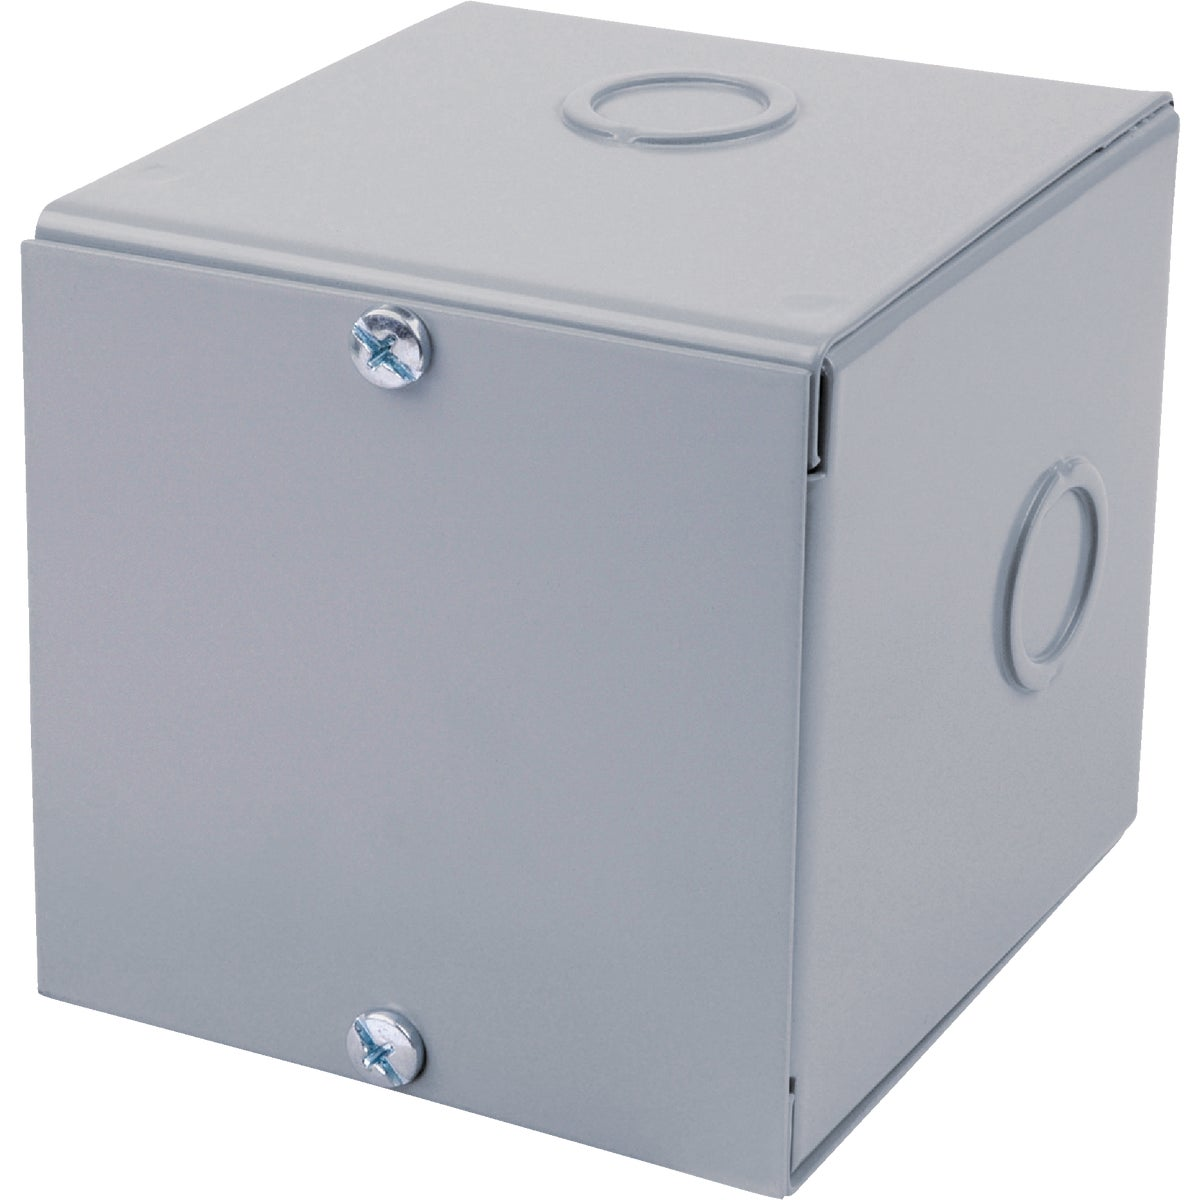 10X10X4 ENCLOSURE - AB-10104SBGK002 by Thomas & Betts